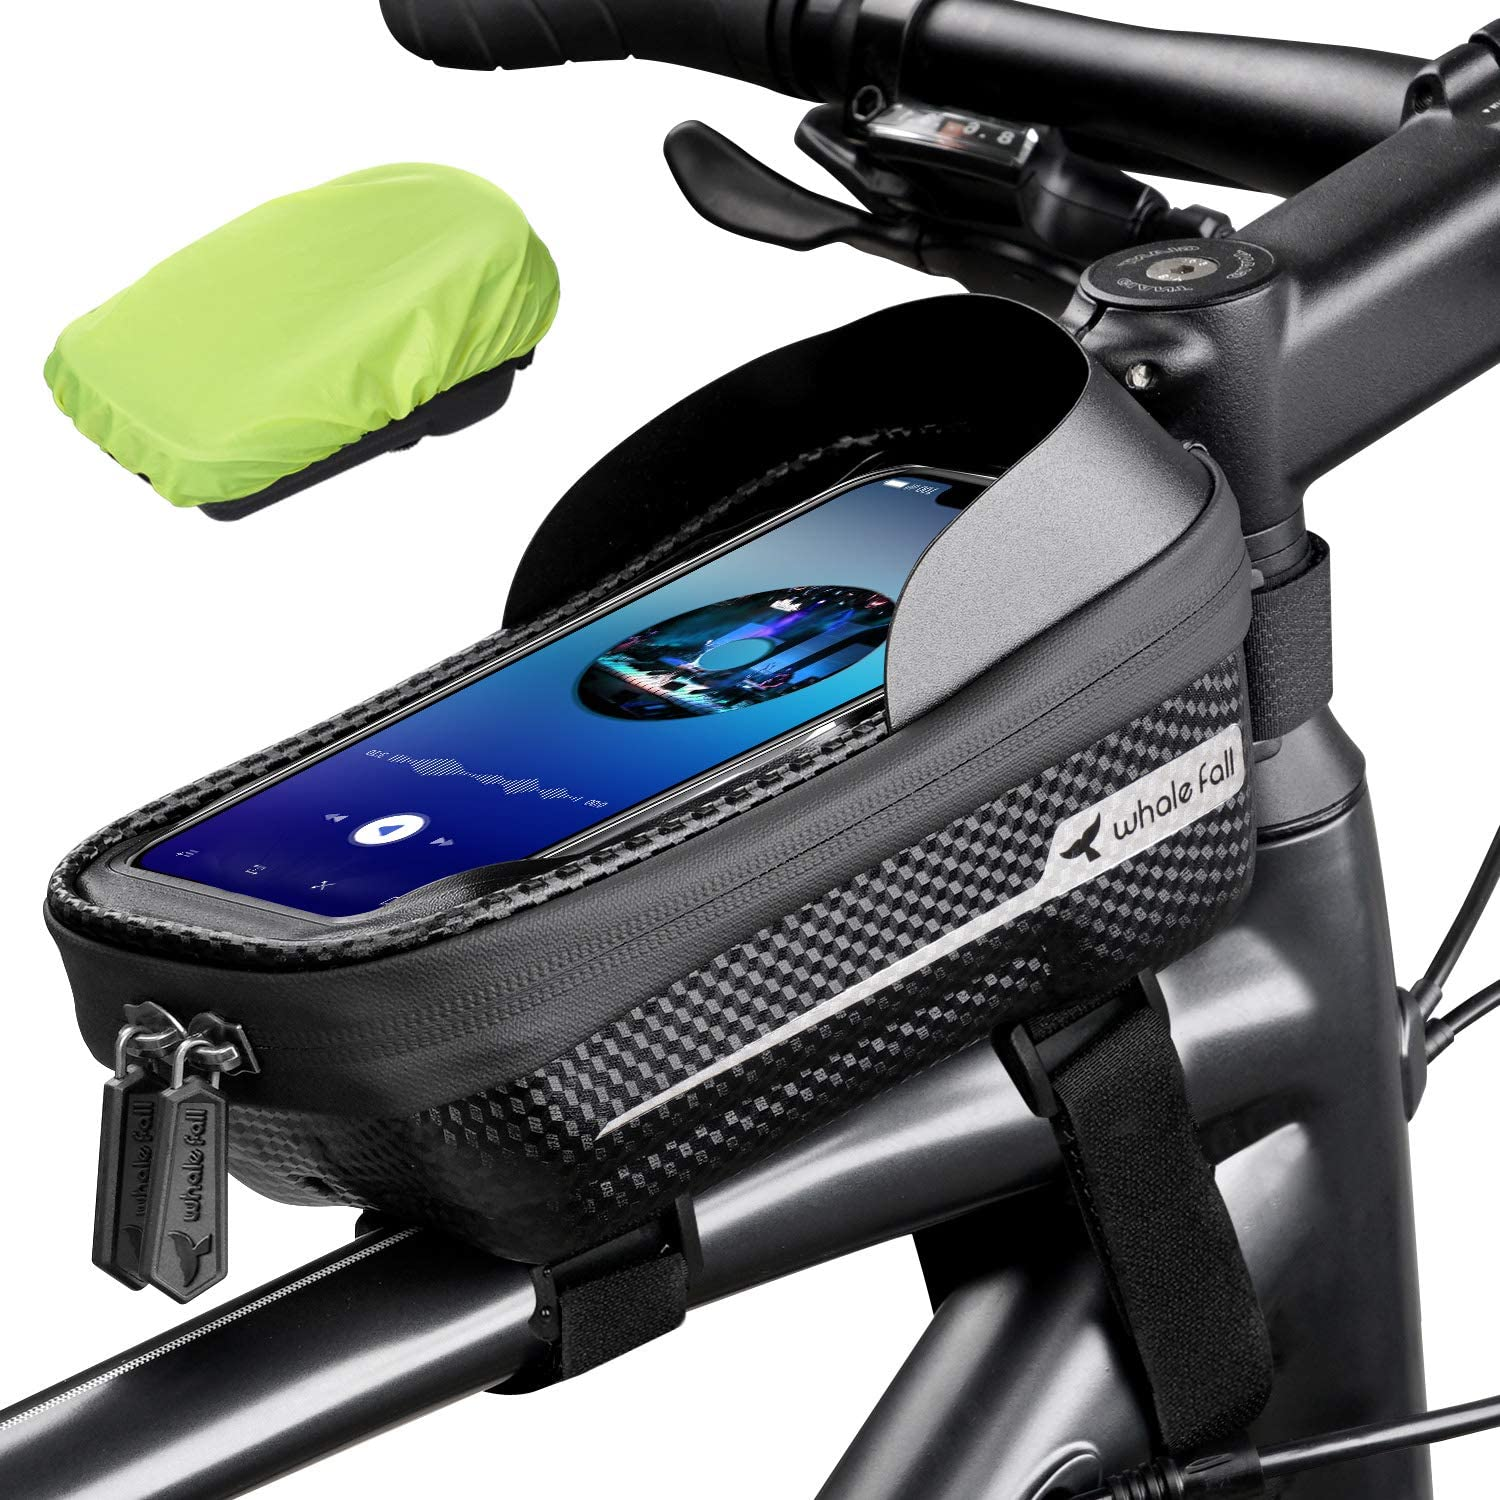 Hard Case Storage Pouch Bag Large Capacity For Bike Scooter Black With Zipper